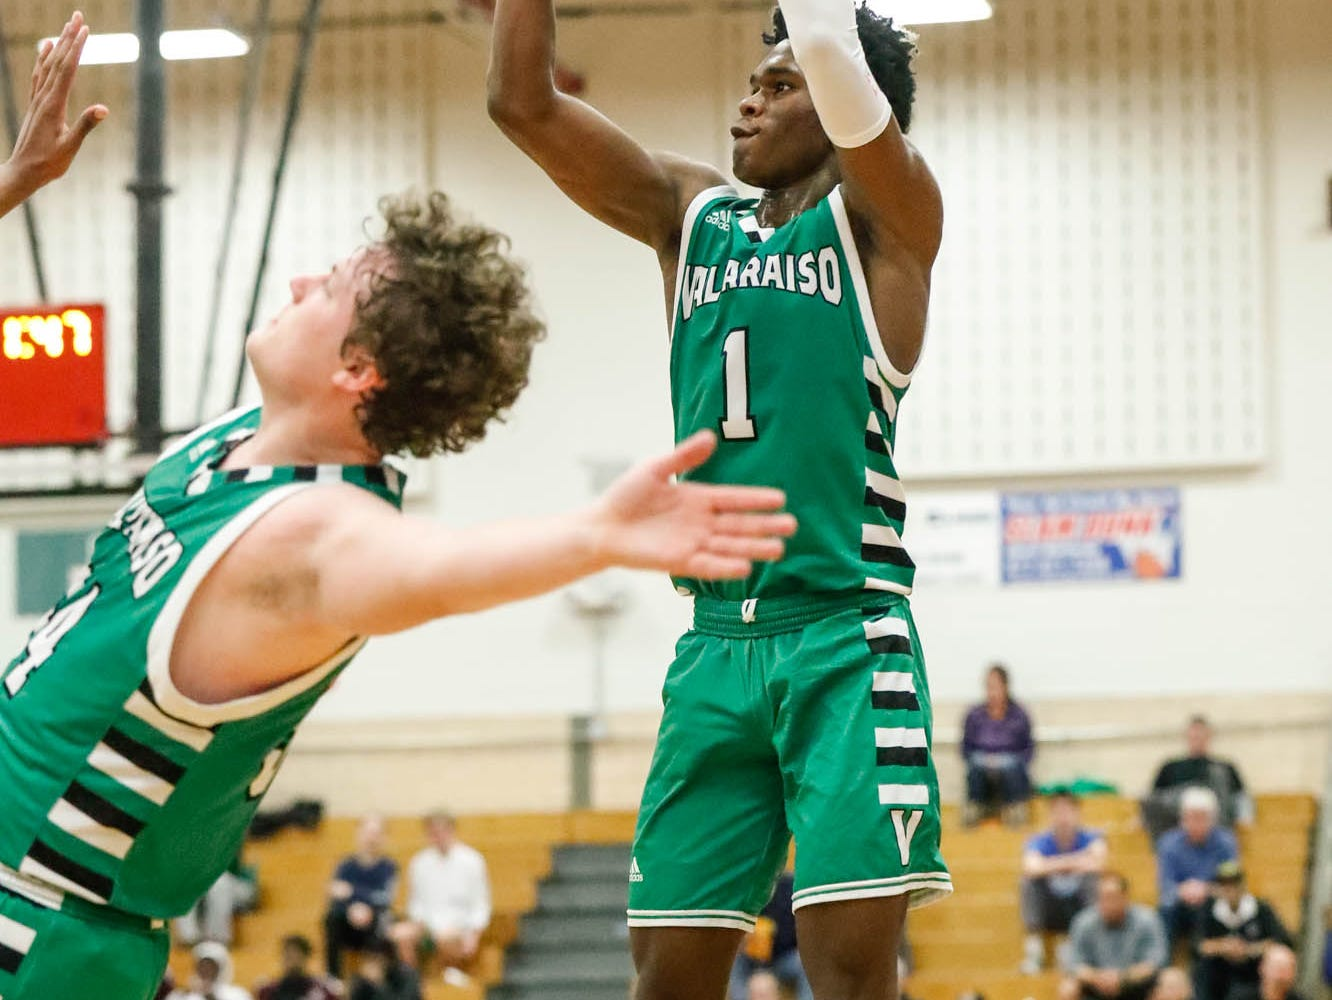 Valparaiso High School's Brandon Newman (1) shoots a three pointer during a game between Zionsville Community High School, and Valparaiso High School, in the 4th Annual Manuel Extravaganza Showcase held at Emmerich Manuel High School in Indianapolis on Saturday, Dec. 22, 2018. Left, Valparaiso High School's Jacob Evans (34).